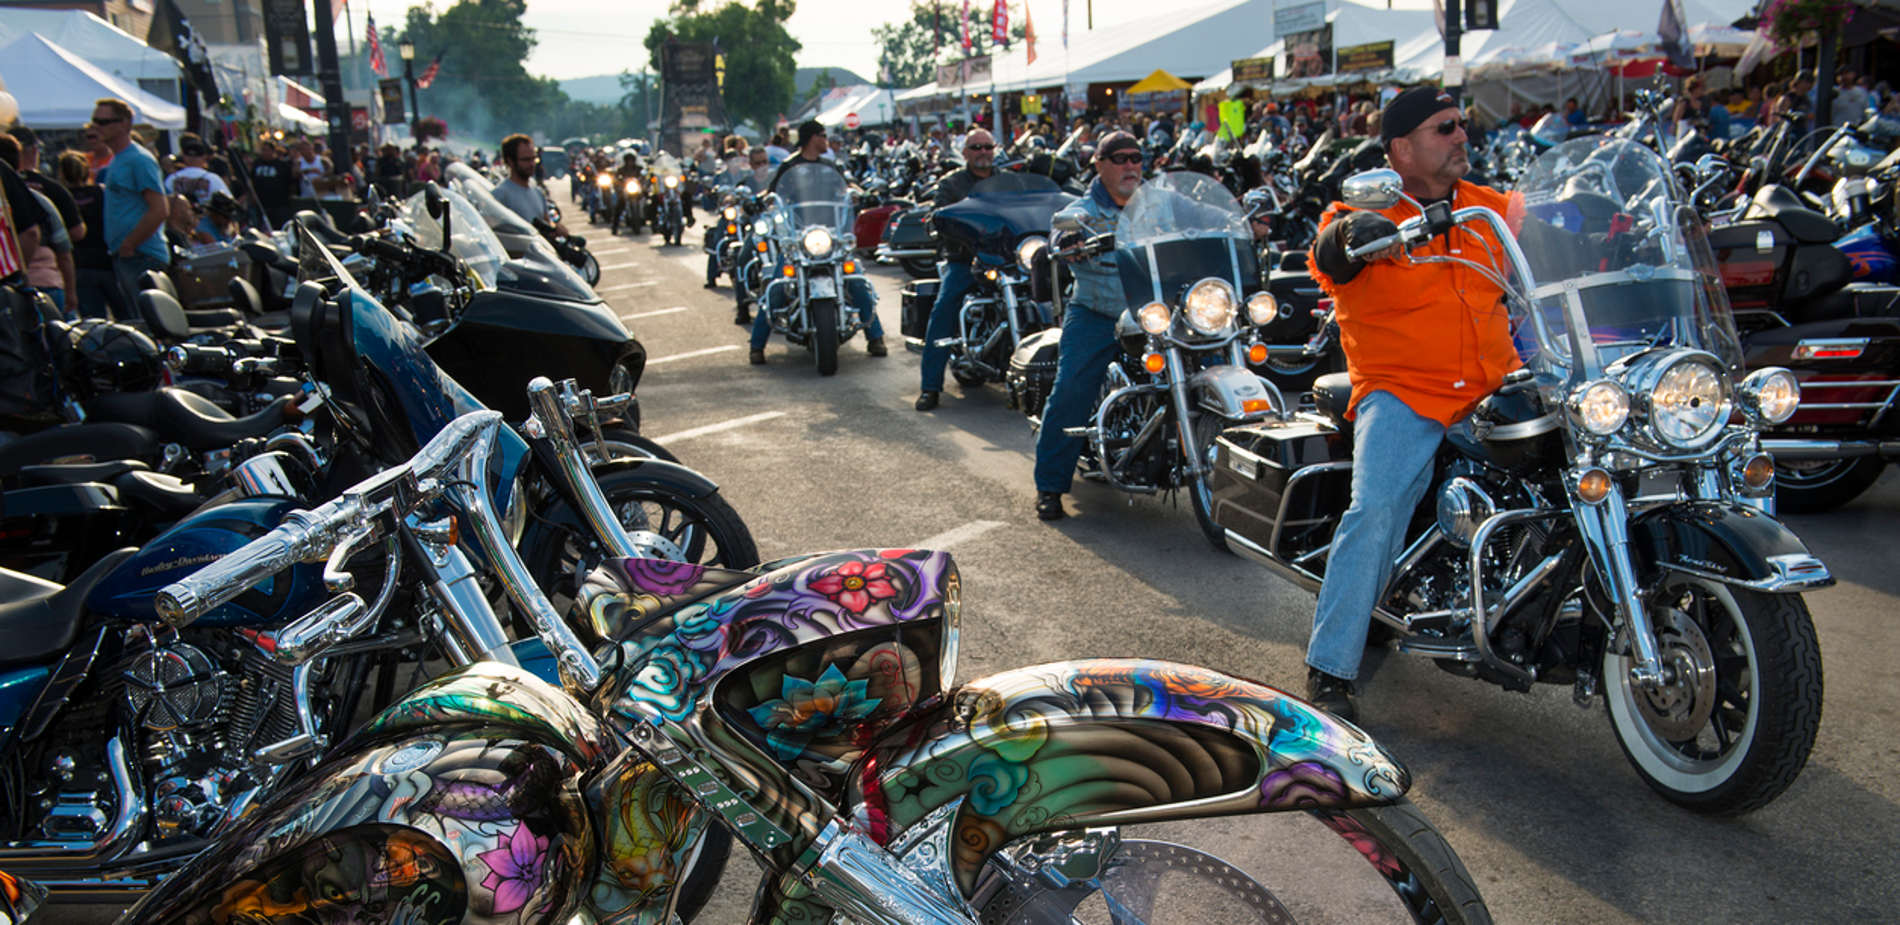 Bitcoin Predictions 2018 >> FACT CHECK: Will Antifa Protest at the Sturgis Bike Rally in 2018?